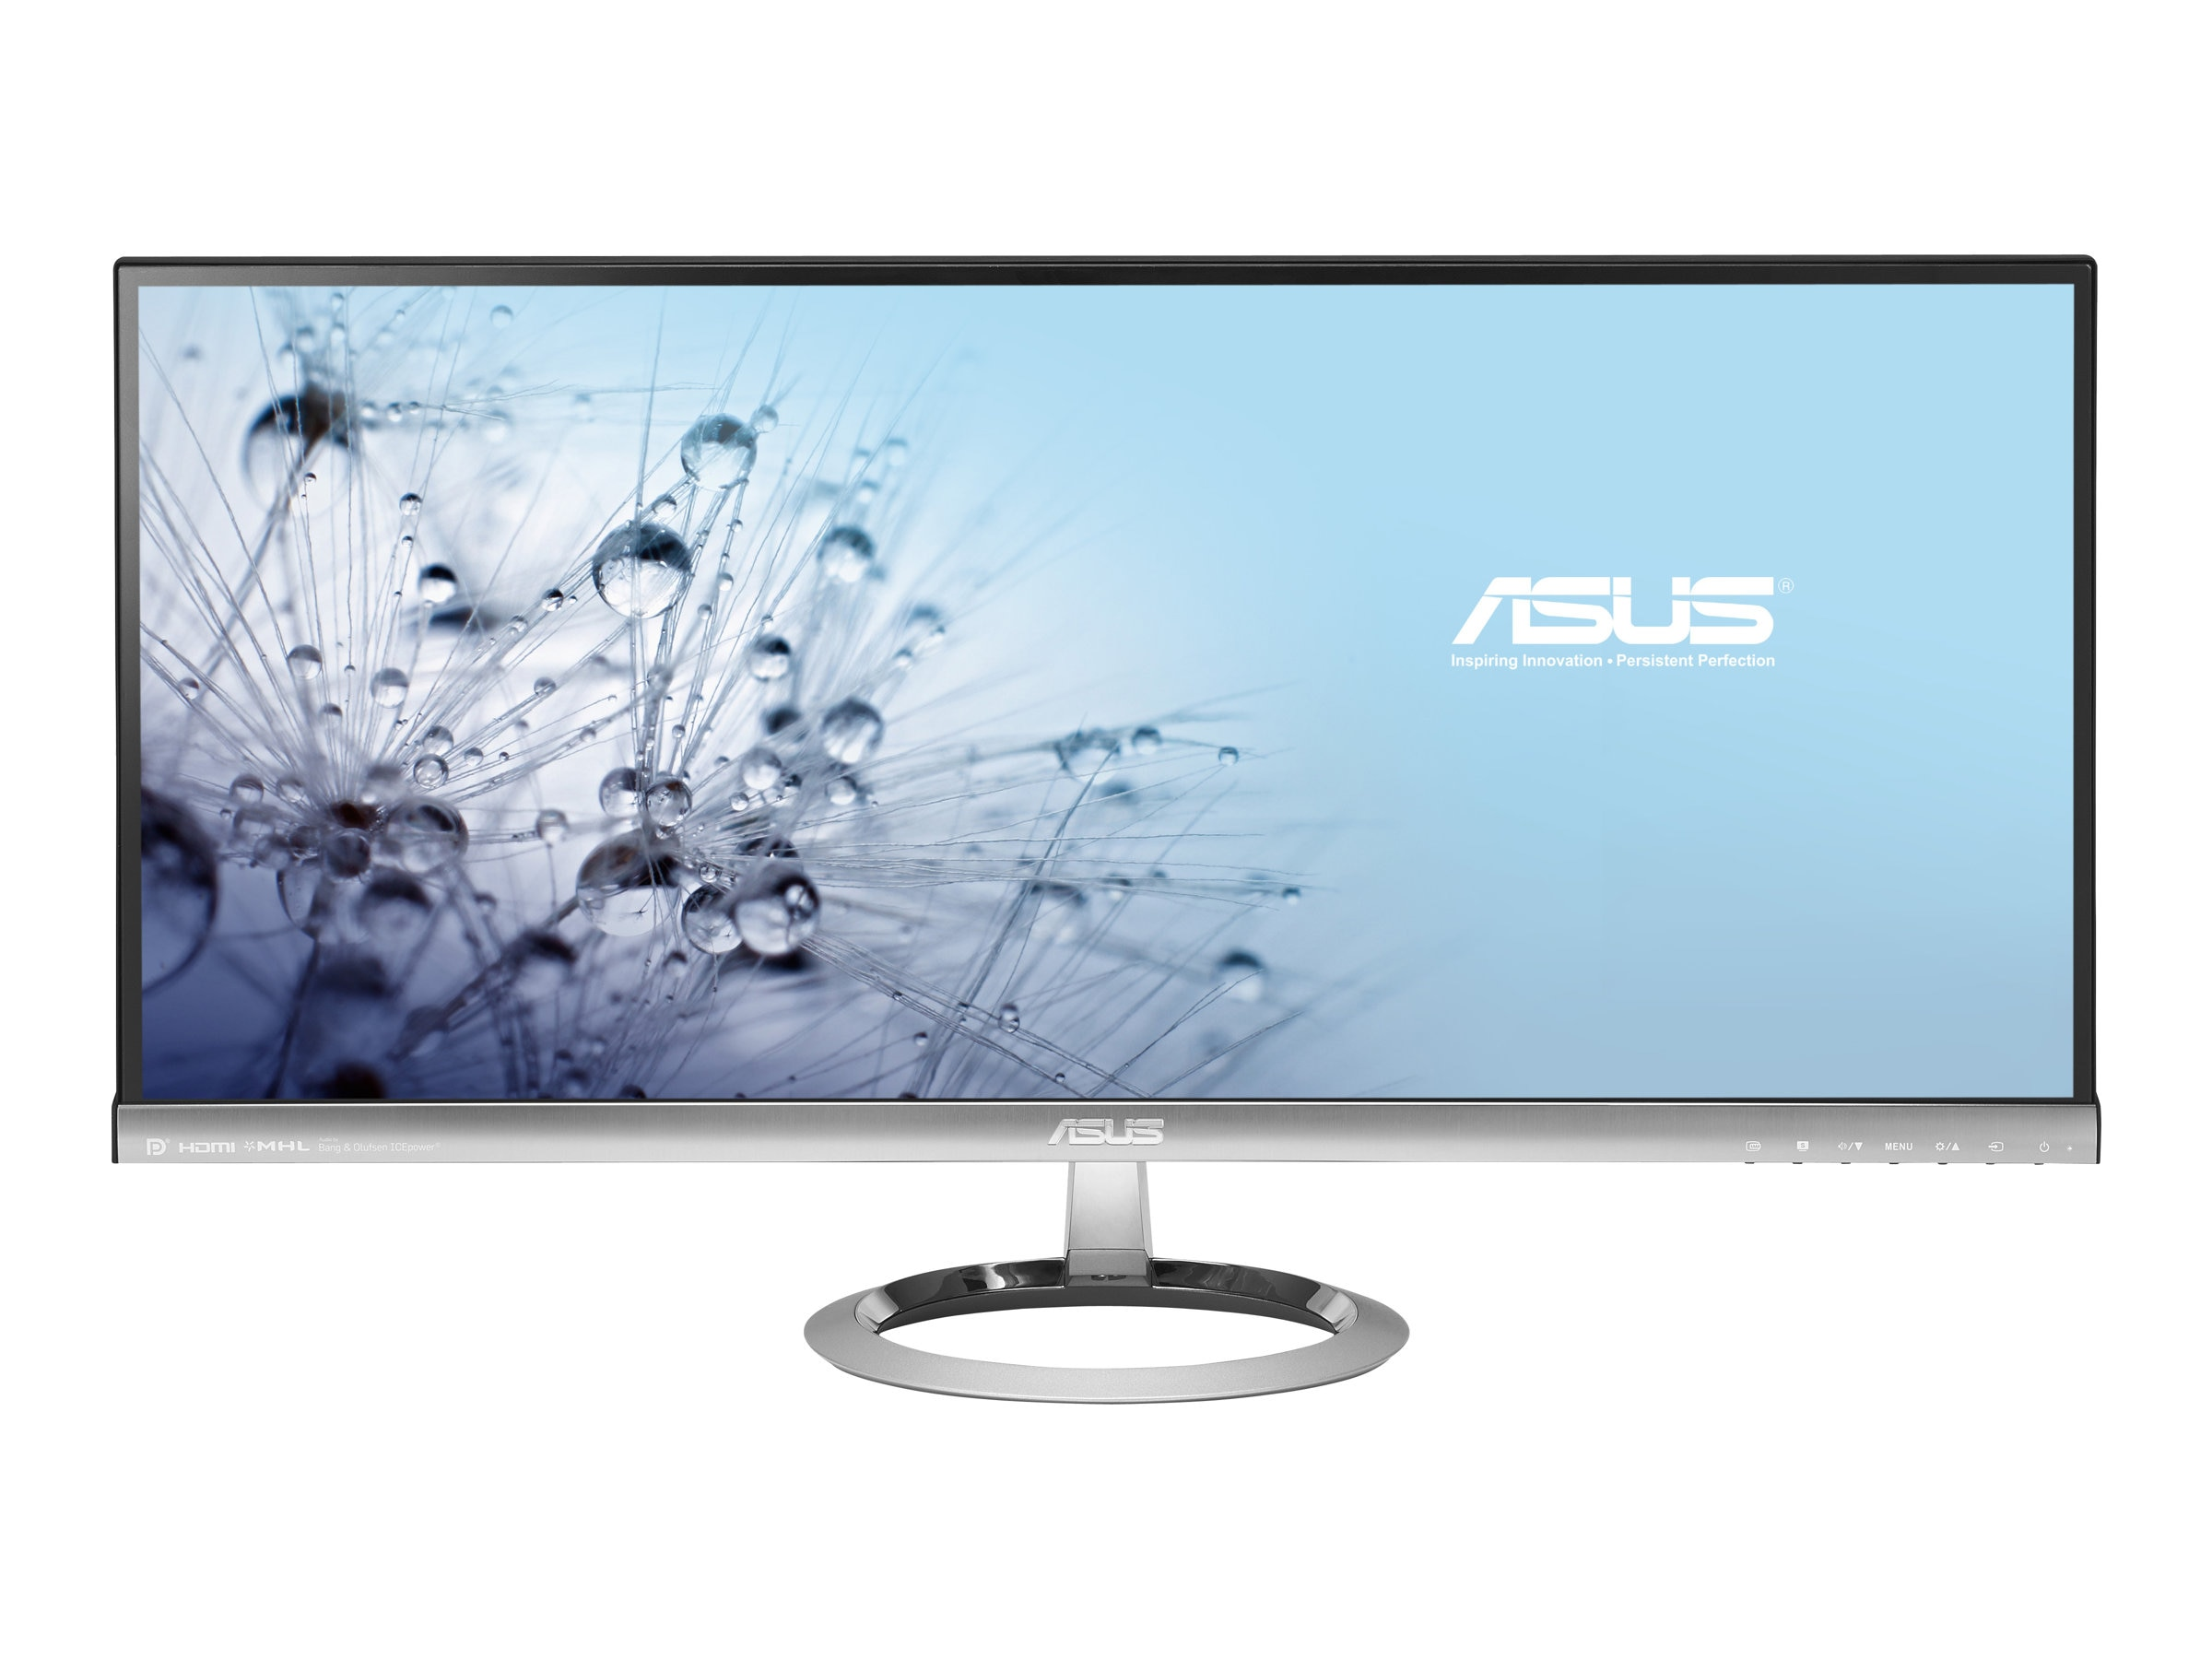 Asus 29 MX299Q LED-LCD Ultrawide Frameless Monitor, Black, MX299Q, 16168297, Monitors - Large-Format LED-LCD